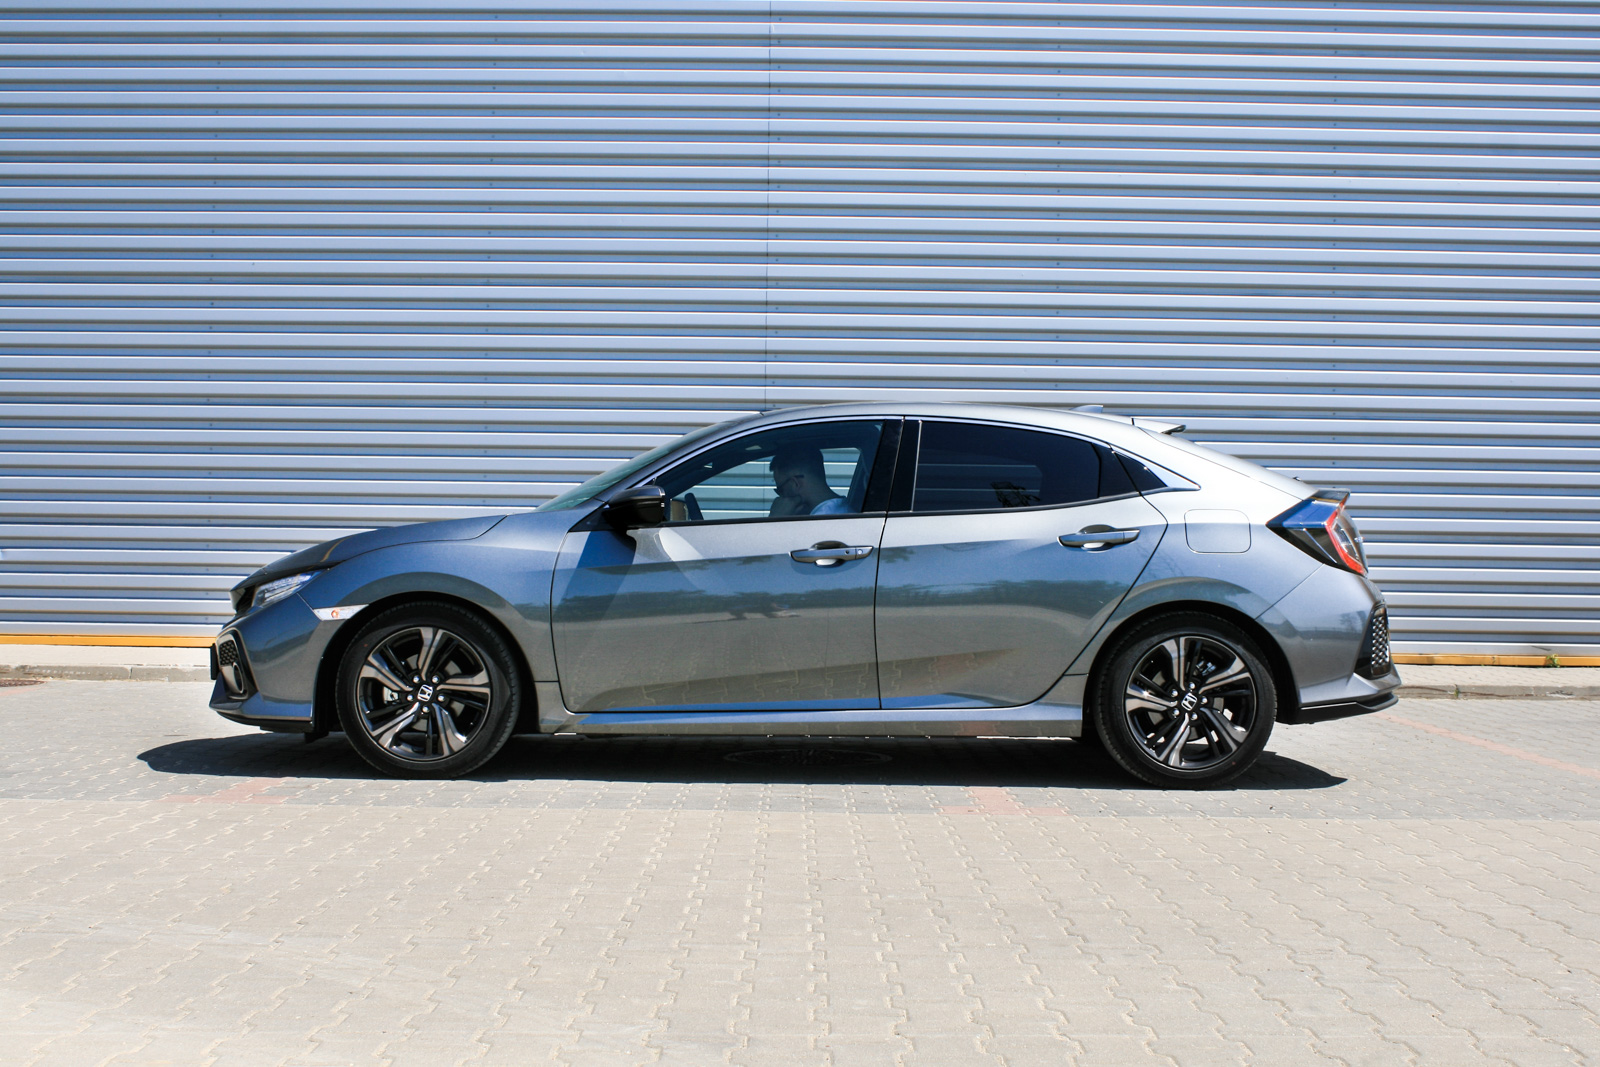 Honda Civic 1.0T